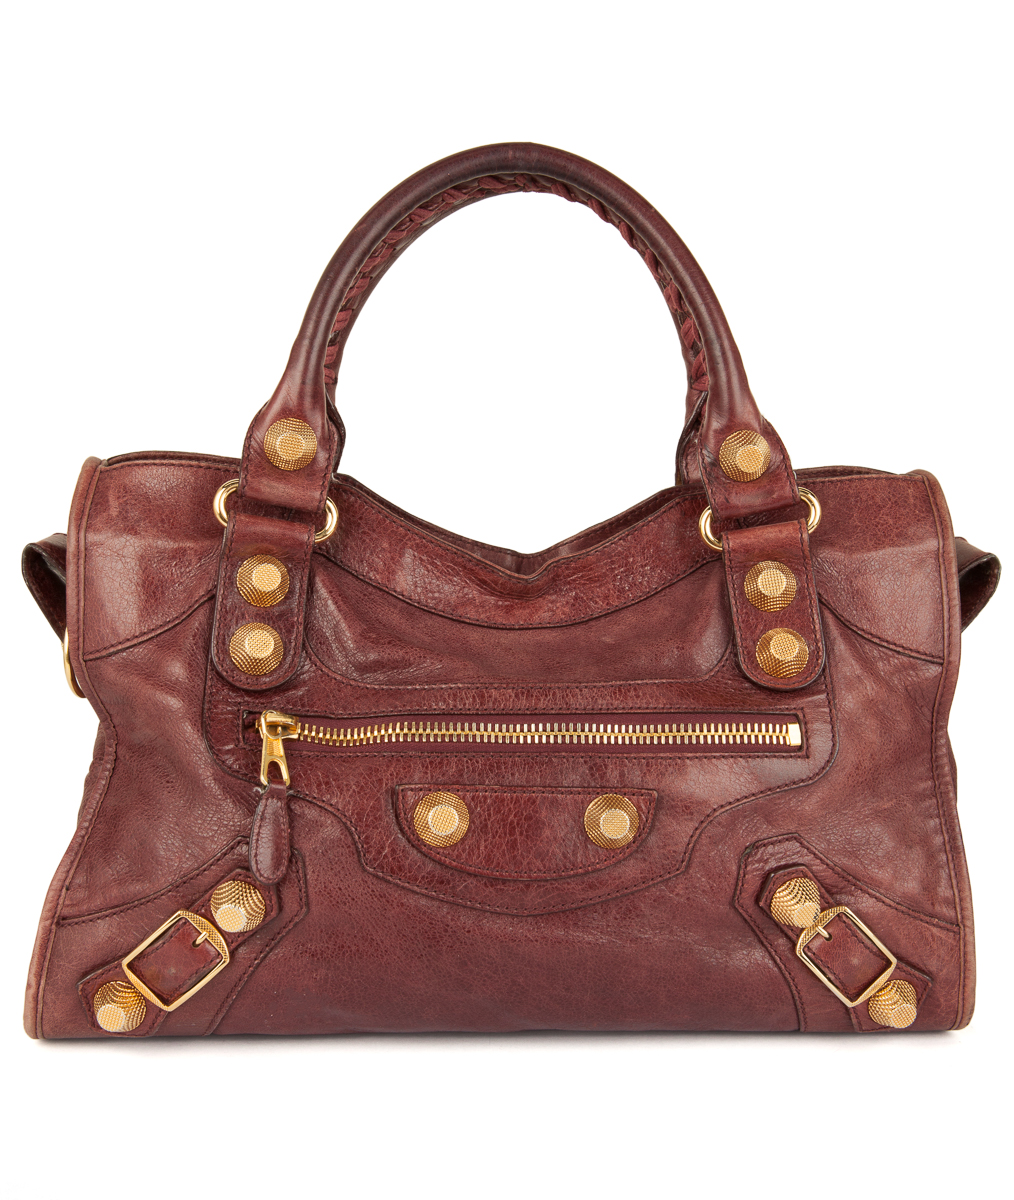 Balenciaga-Maroon-Leather-and-Large-Gold-Studs-Shoulder-Bag_31498A.jpg